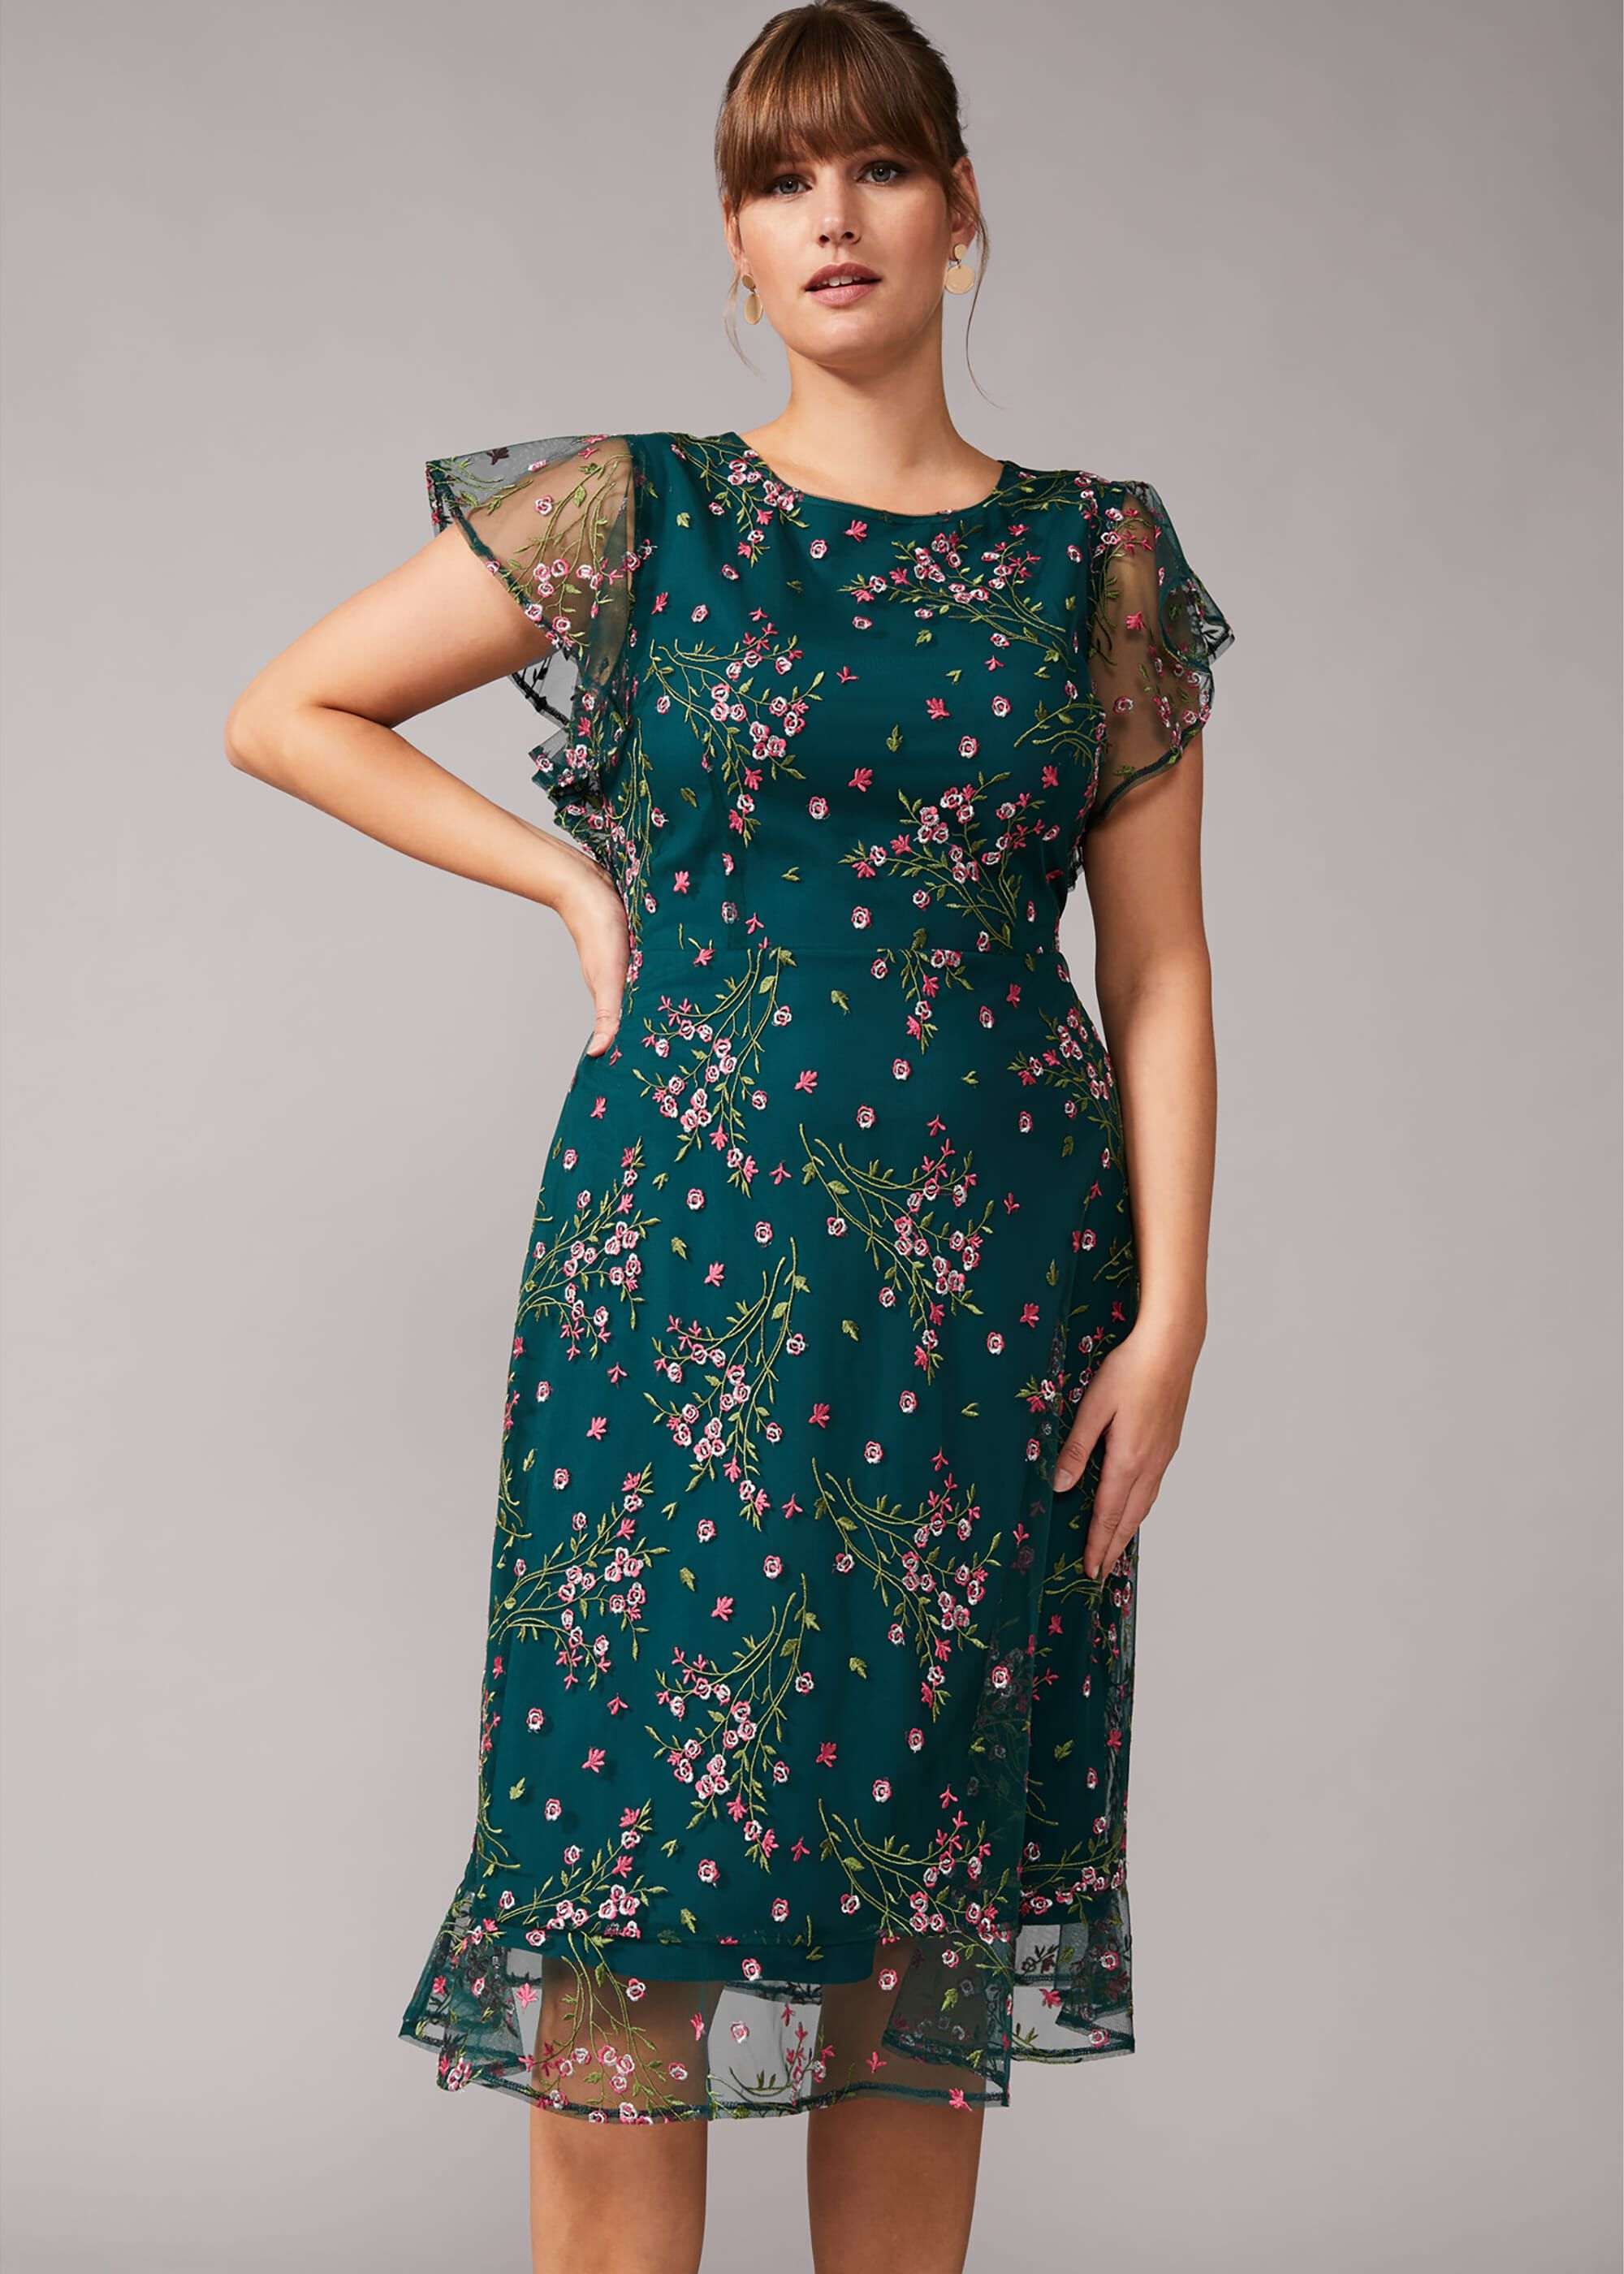 Studio 8 Aileen Floral Embroidered Dress, Green, Shift